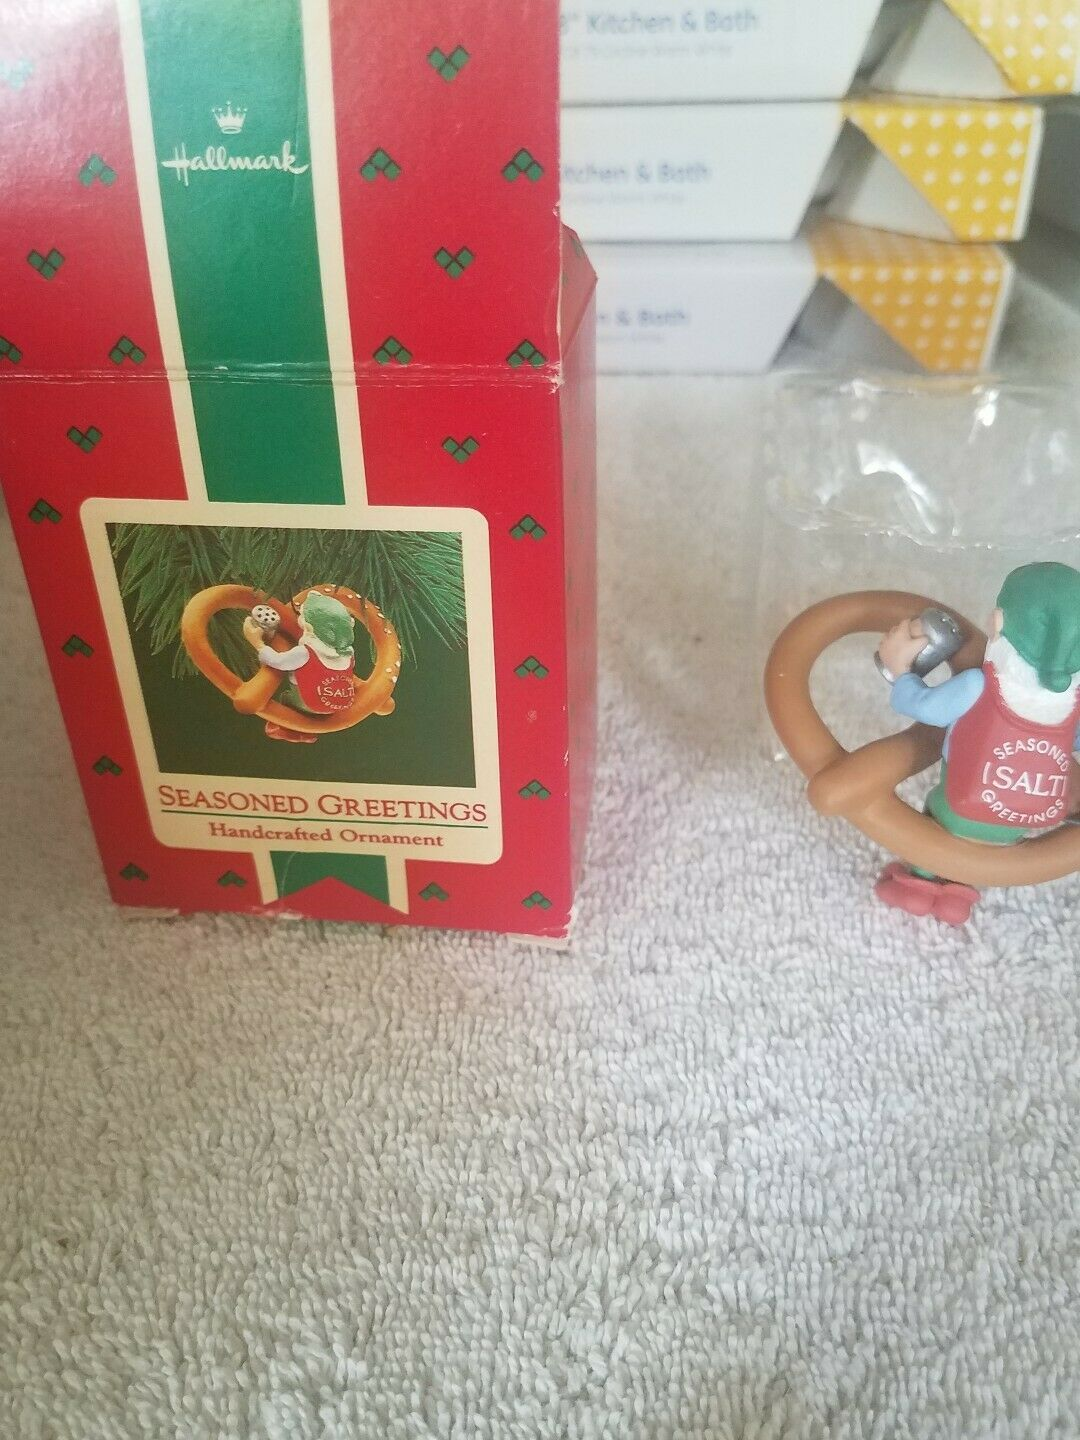 Primary image for Seasones Greetings Elf Pretzel Handcrafted Ornament Christmas display store mode